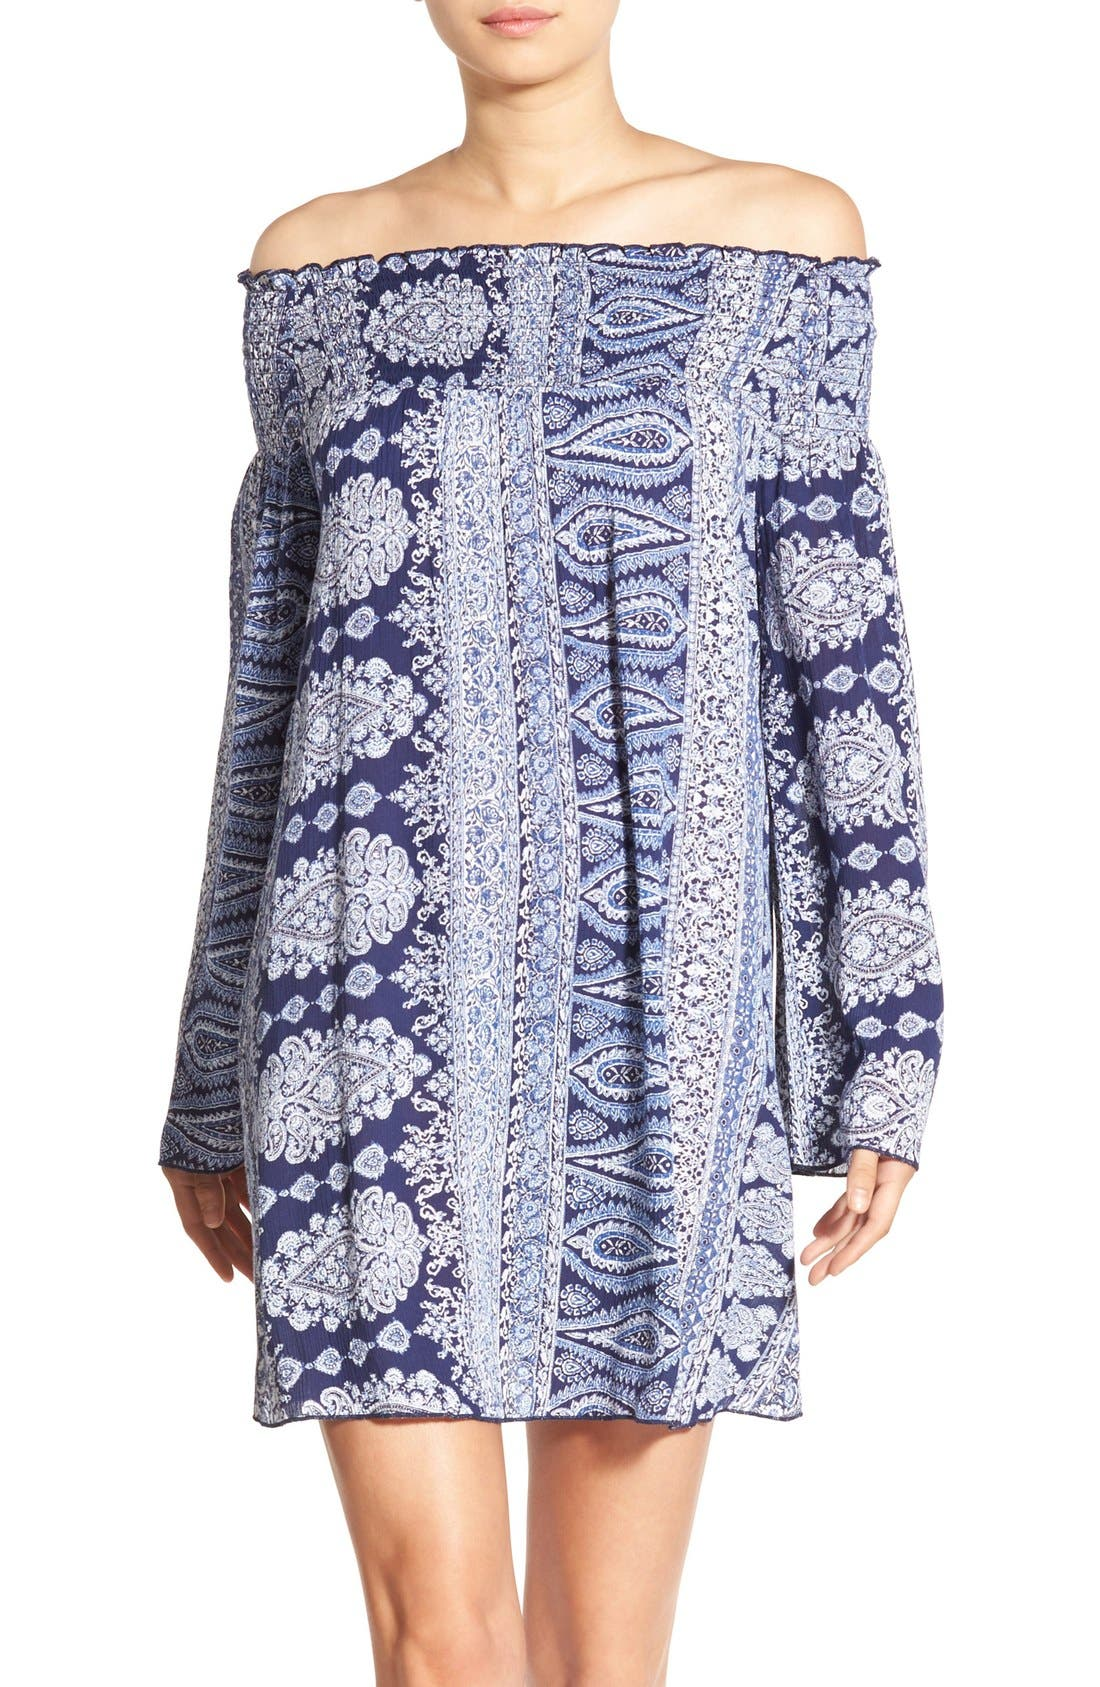 Alternate Image 1 Selected - Band of Gypsies Paisley Off the Shoulder Shift Dress